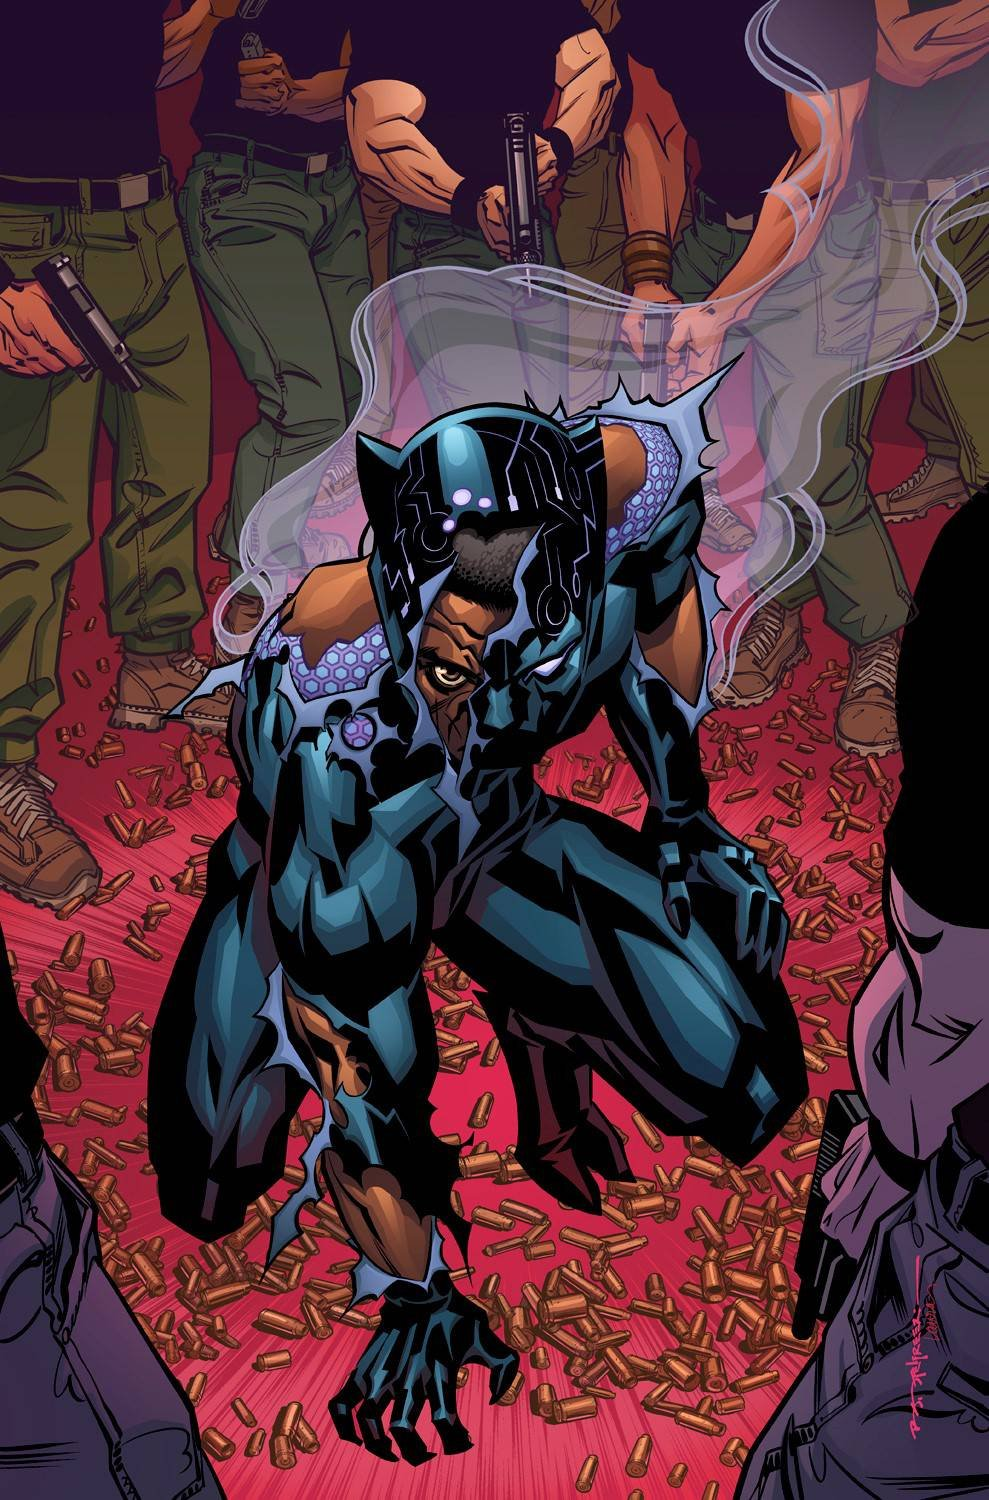 Download BLACK PANTHER #16 VOL 6 COVER A PDF